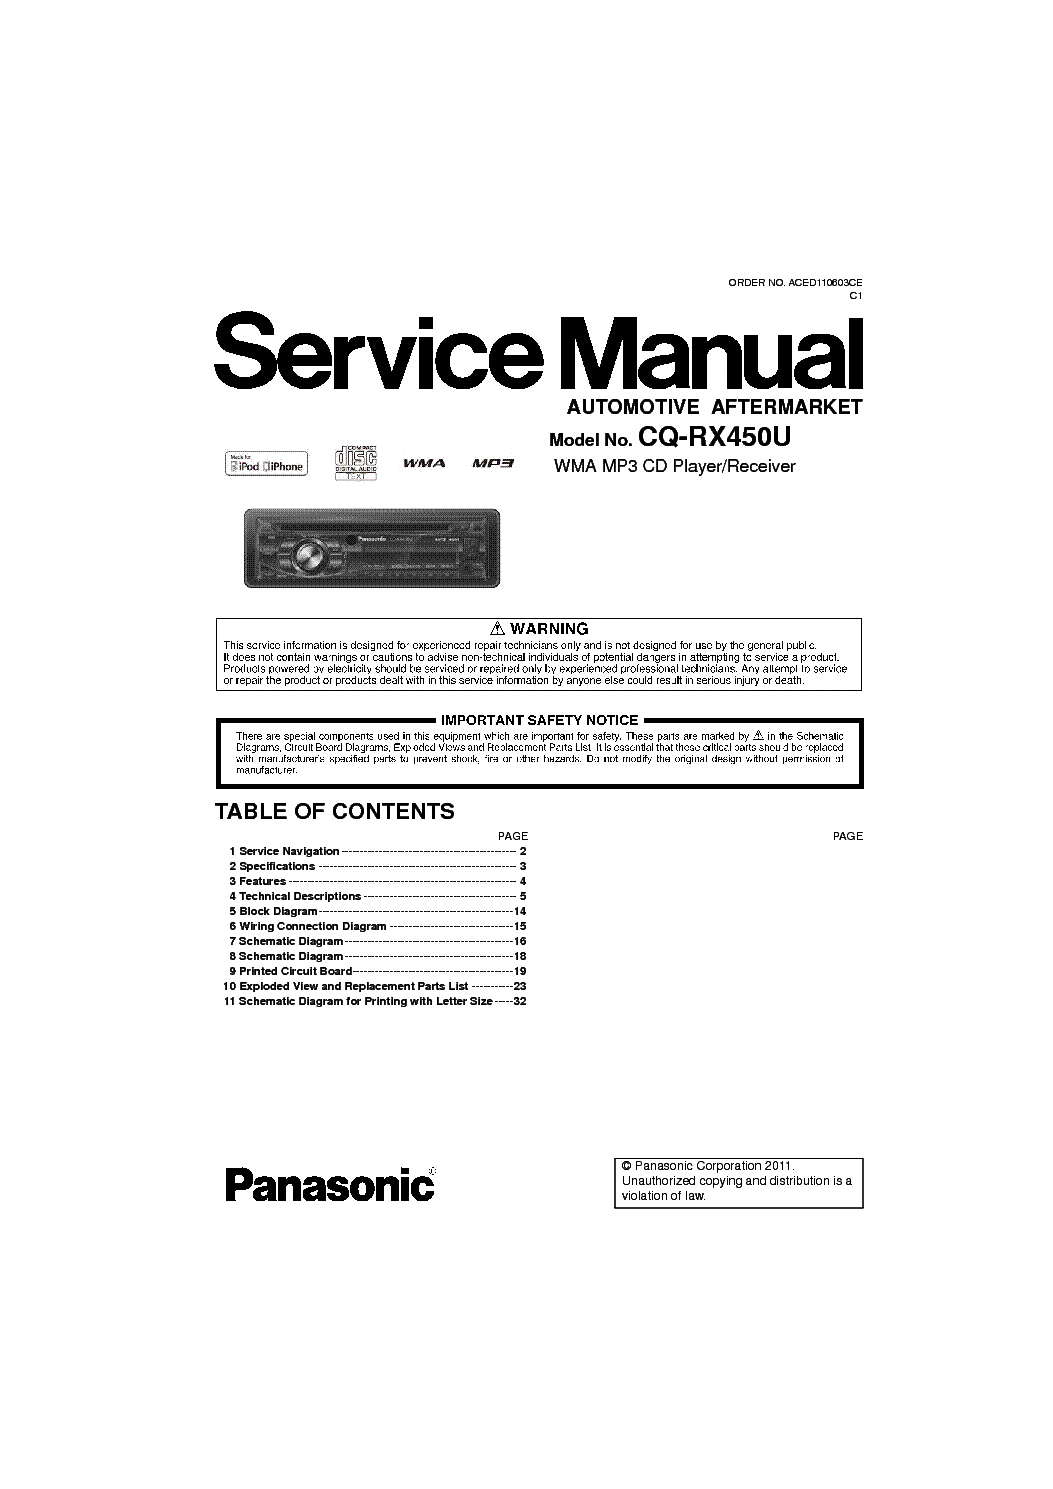 panasonic_cq rx450u.pdf_1 panasonic cq rx450u service manual download, schematics, eeprom panasonic wiring diagram at eliteediting.co